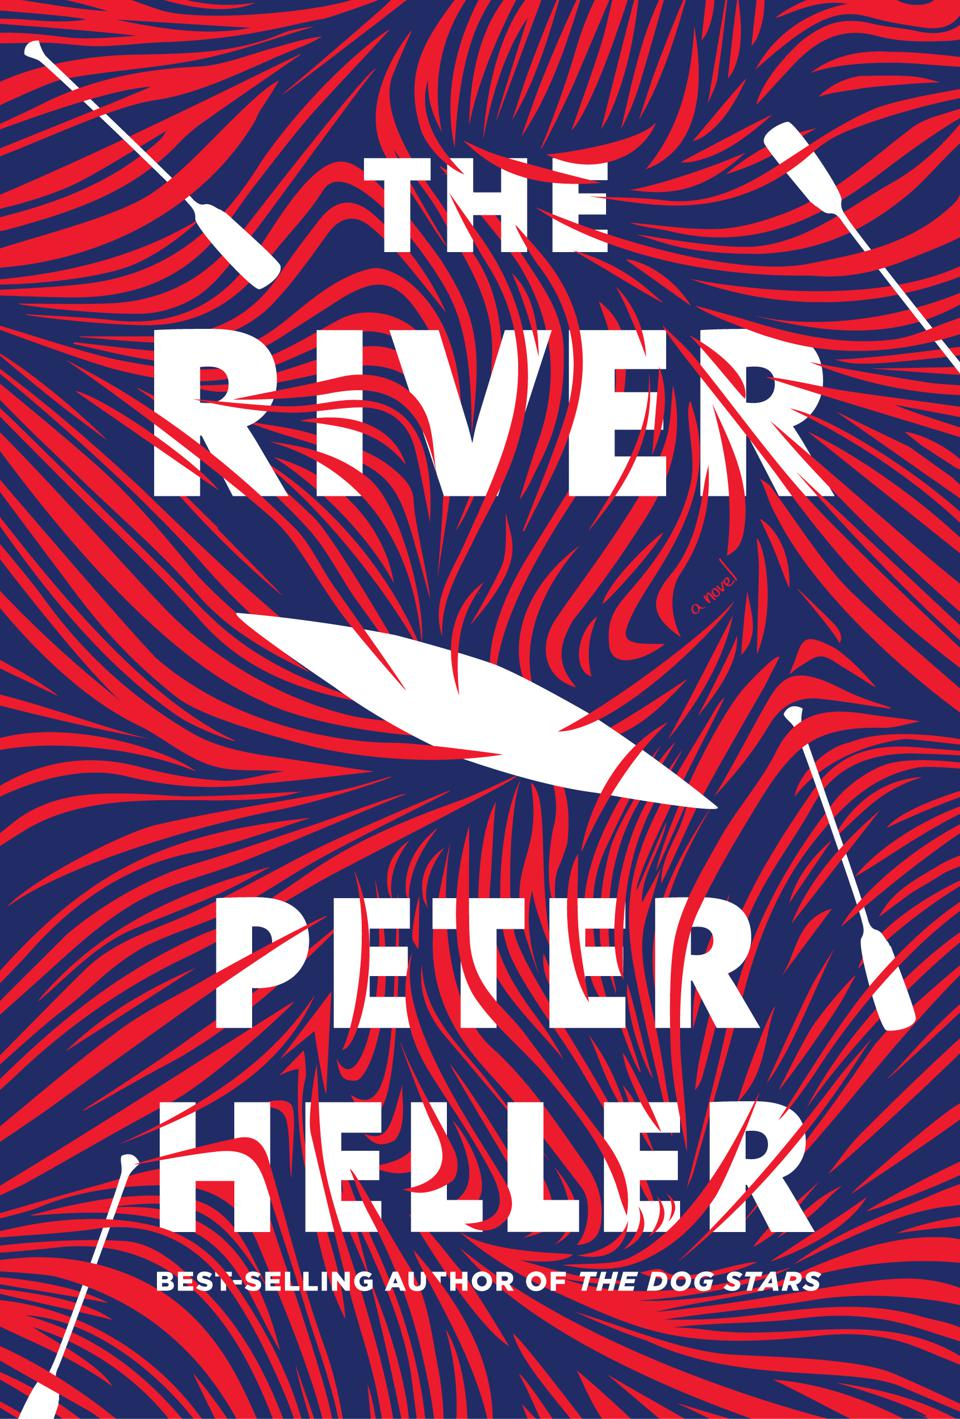 summer books the river peter heller knopf